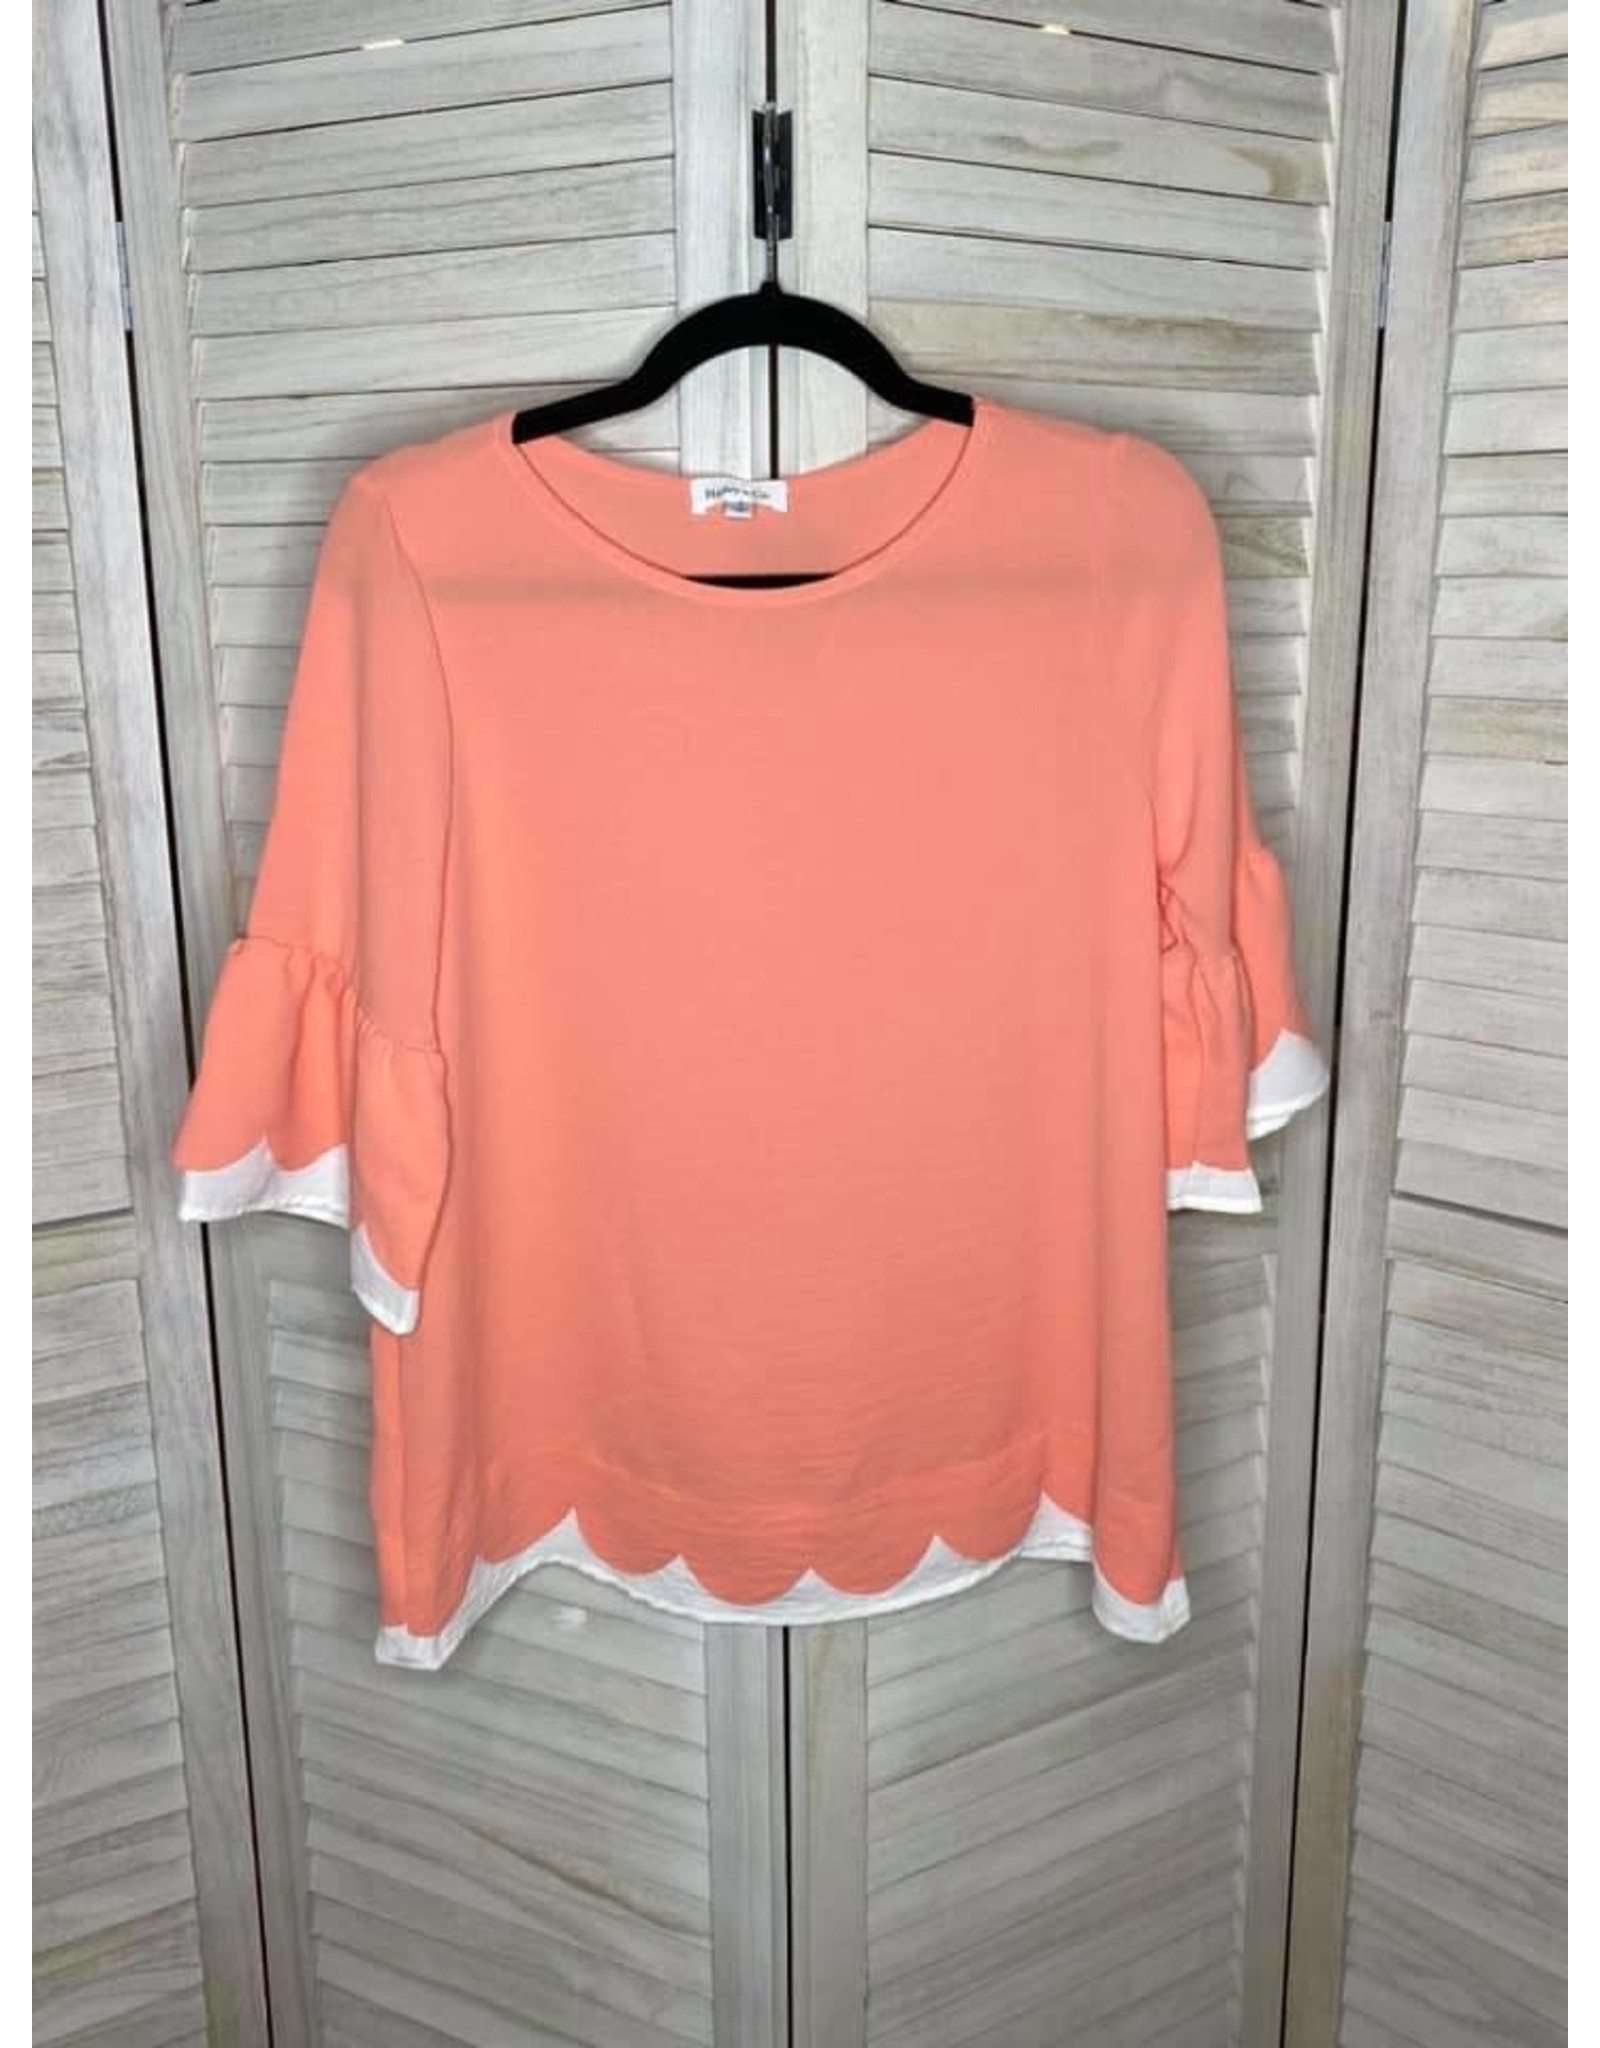 Hailey & Co Coral and Ivory Scalloped Hem and Ruffle Sleeve